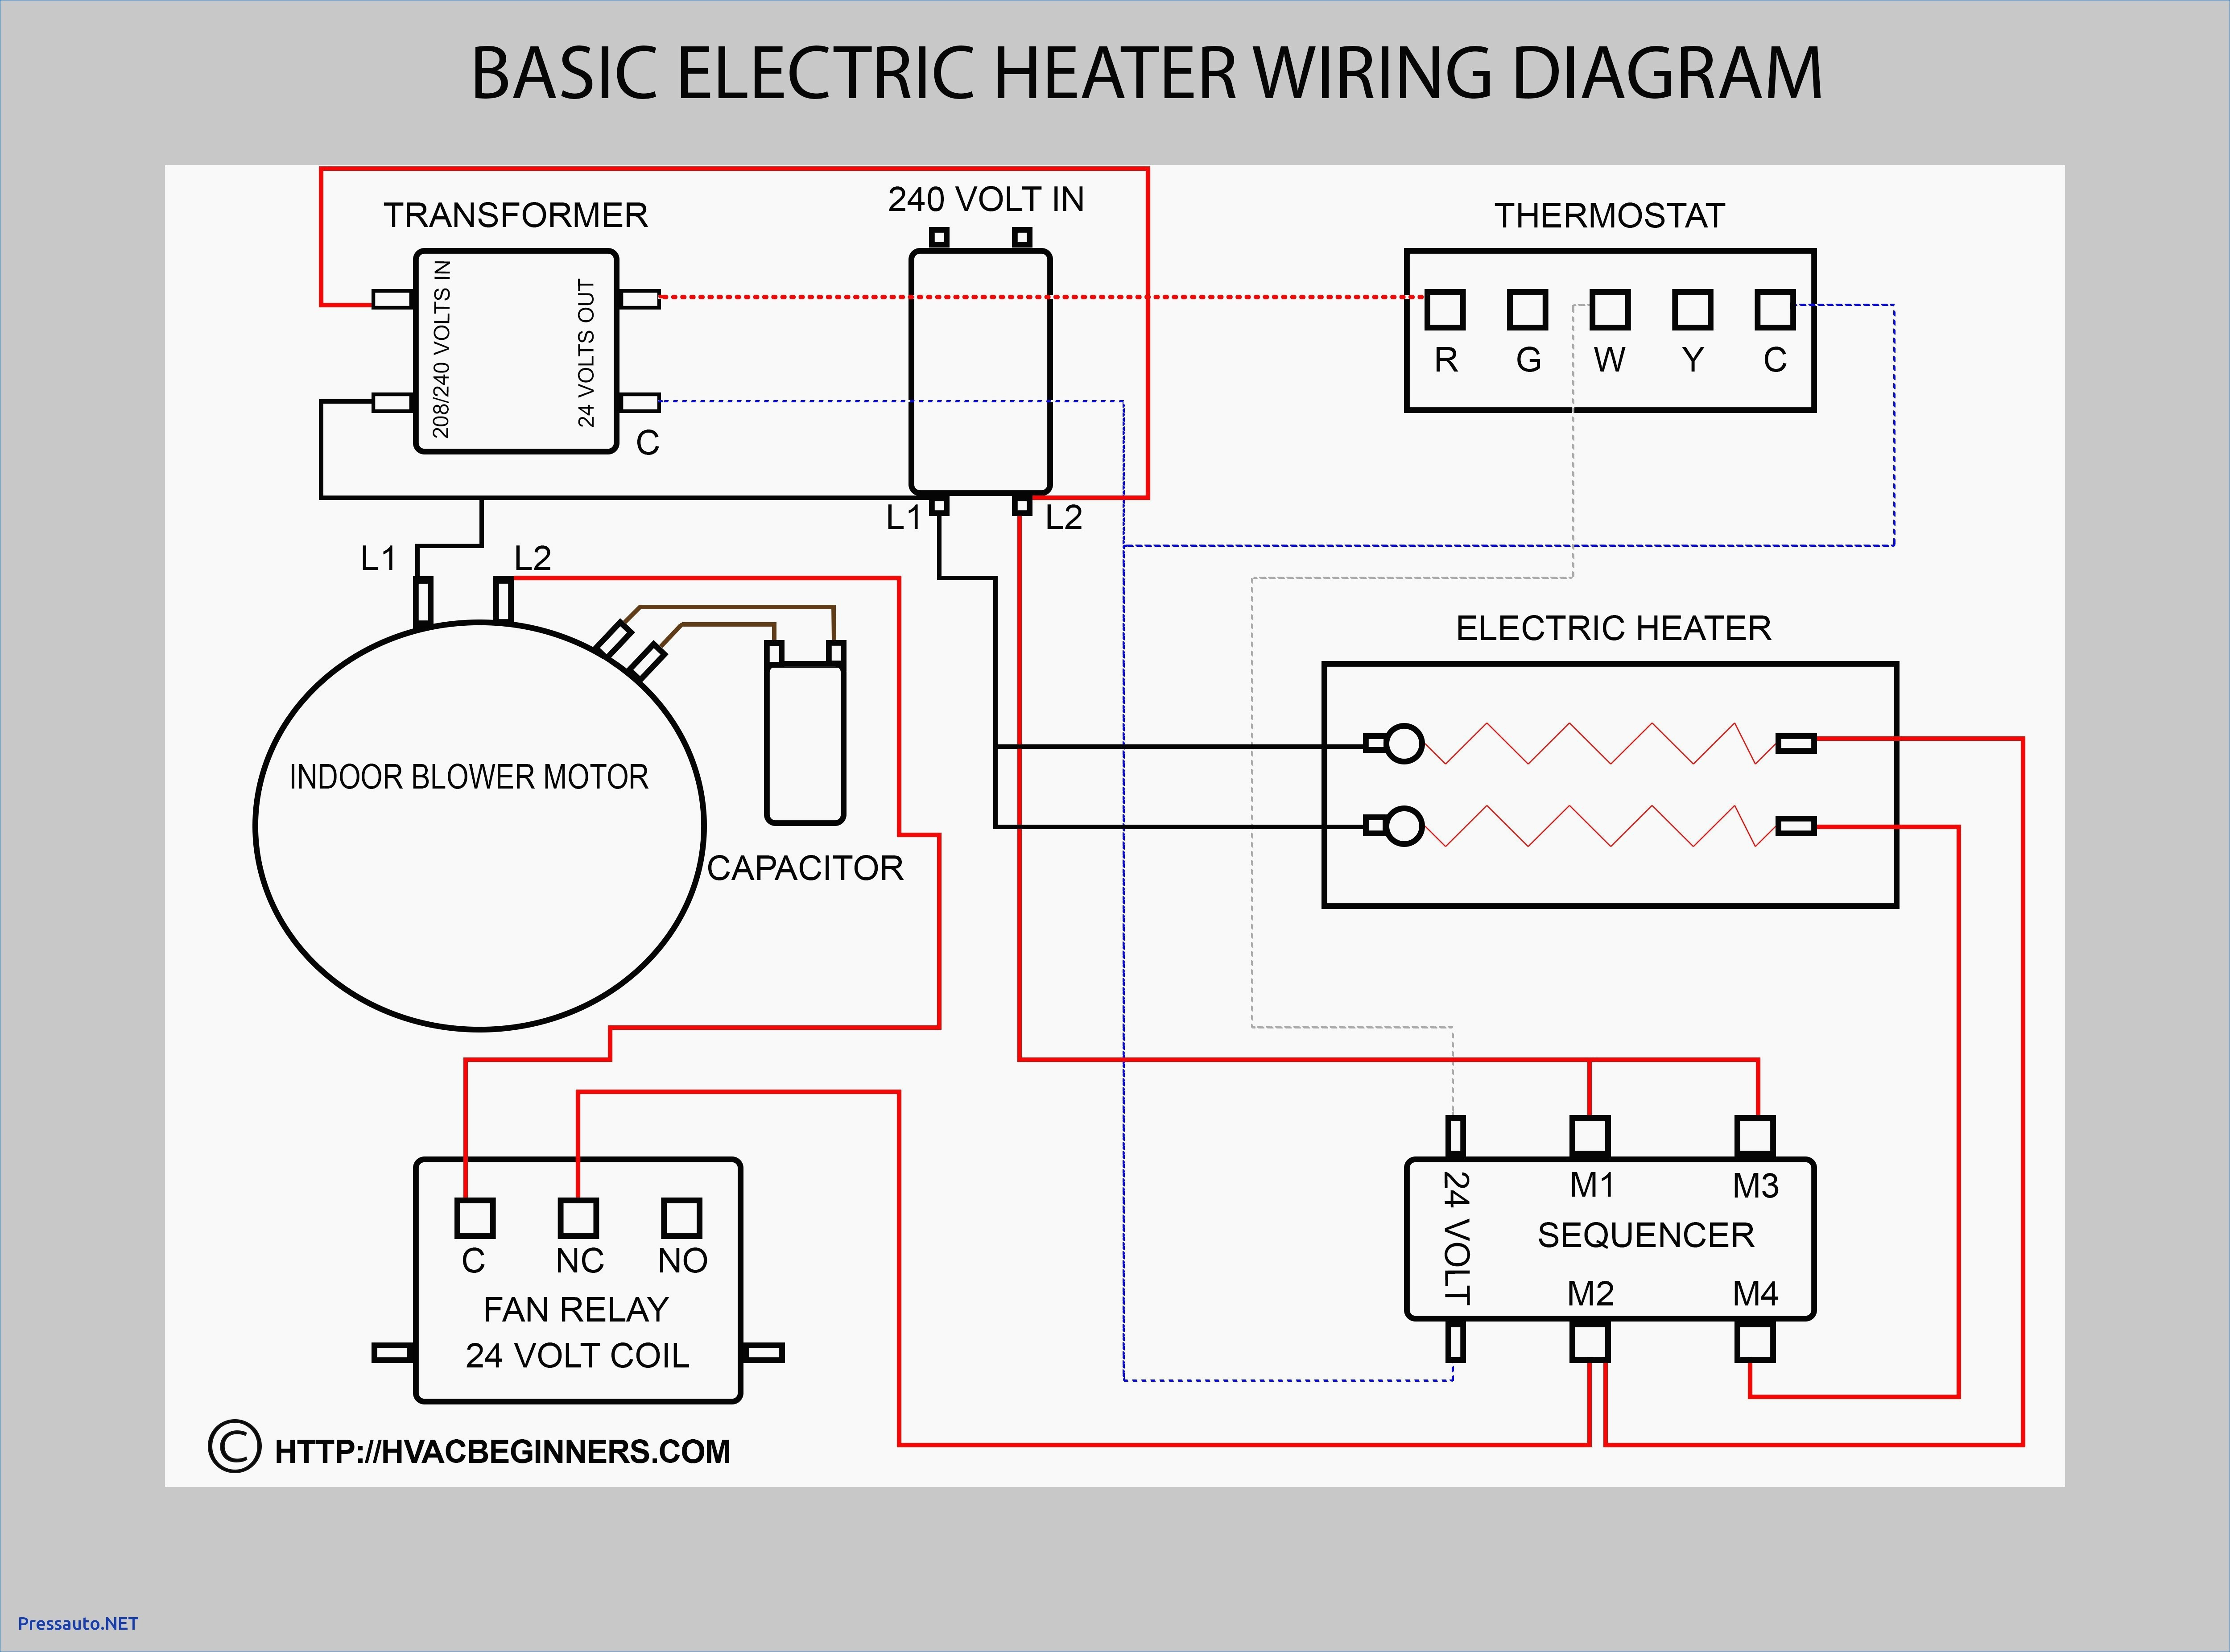 4 wire thermostat wiring diagram Collection-house thermostat wiring diagram Collection Wiring Diagrams For Central Heating Save Wiring Diagram For Heating DOWNLOAD Wiring Diagram 13-e